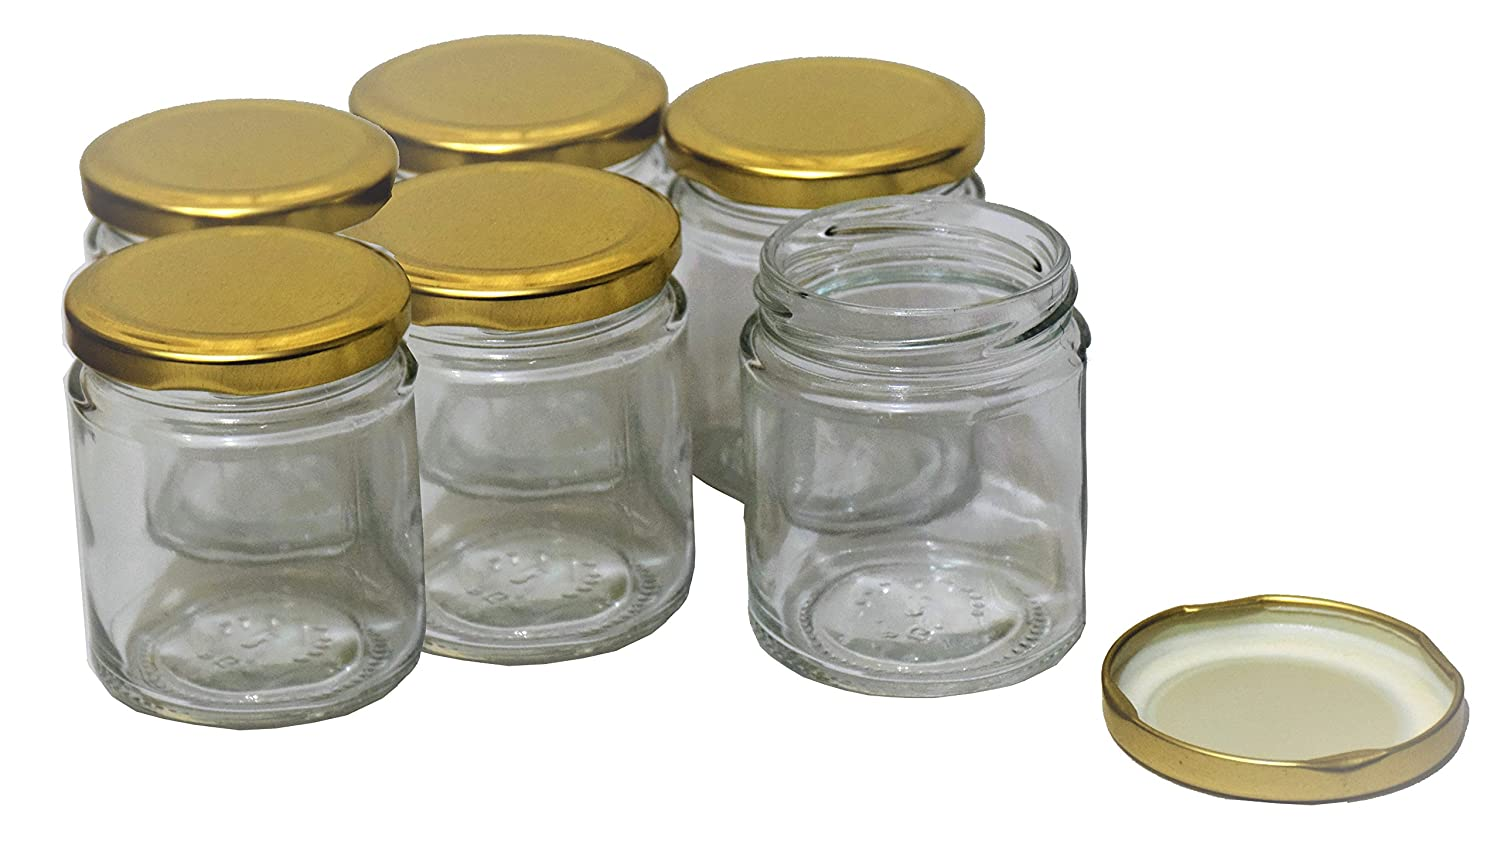 Pure Source India Small Glass jar Set of 6 pcs coming with metal Golden color Air Tight and Rust proof cap , Capacity 50 Gram About Made In India .